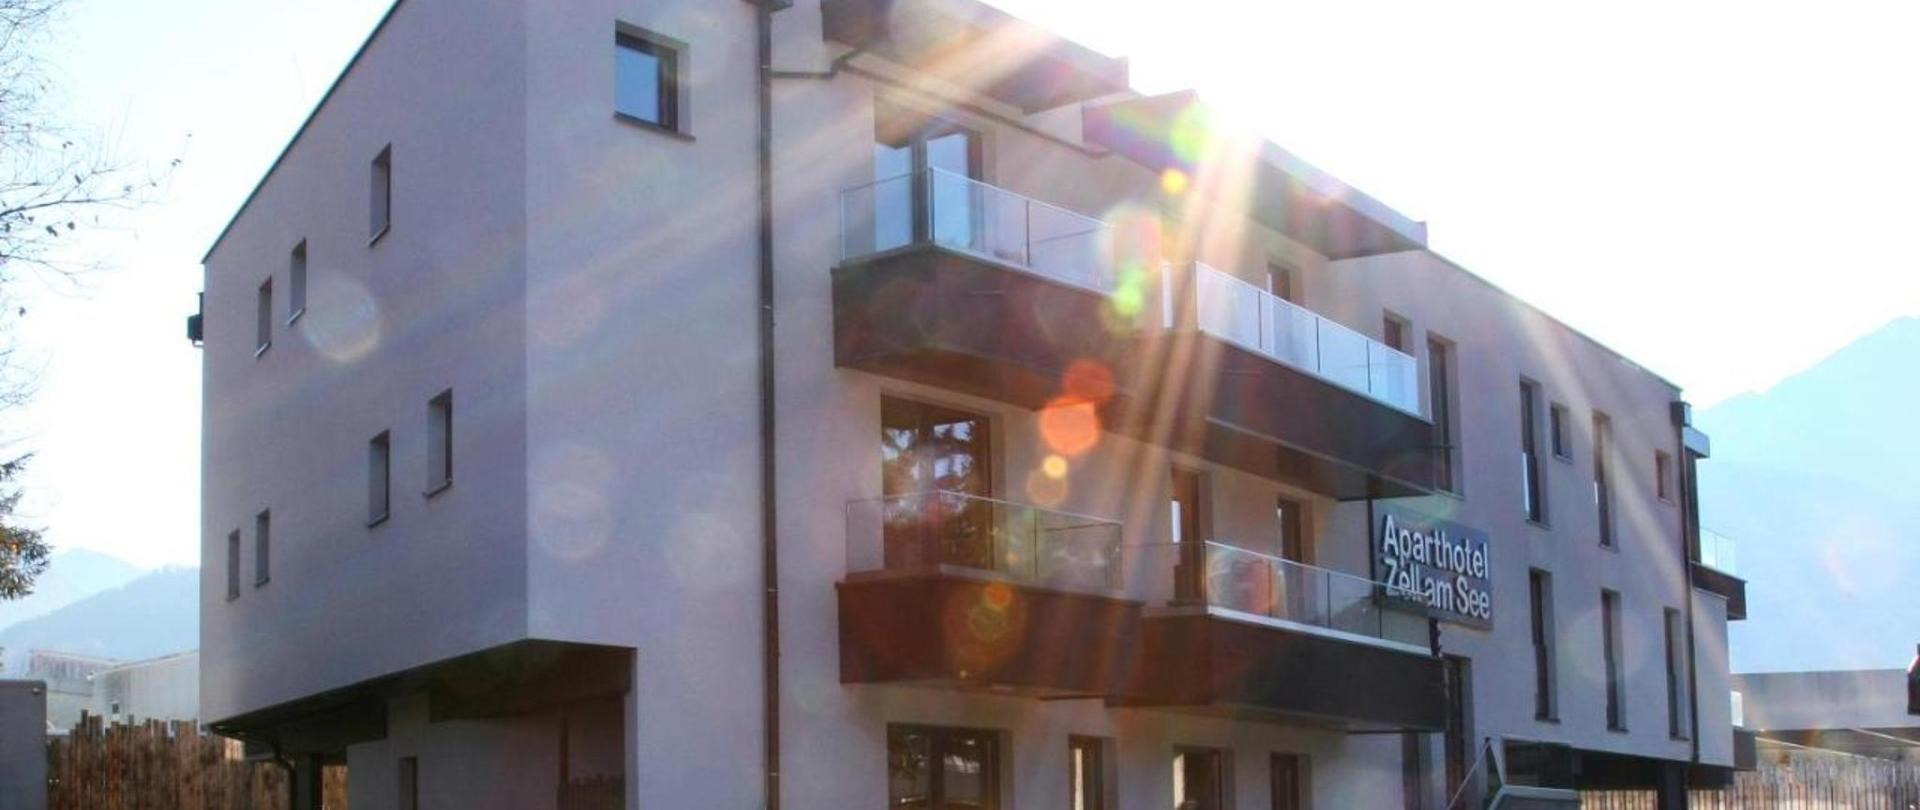 Aparthotel Zell am See